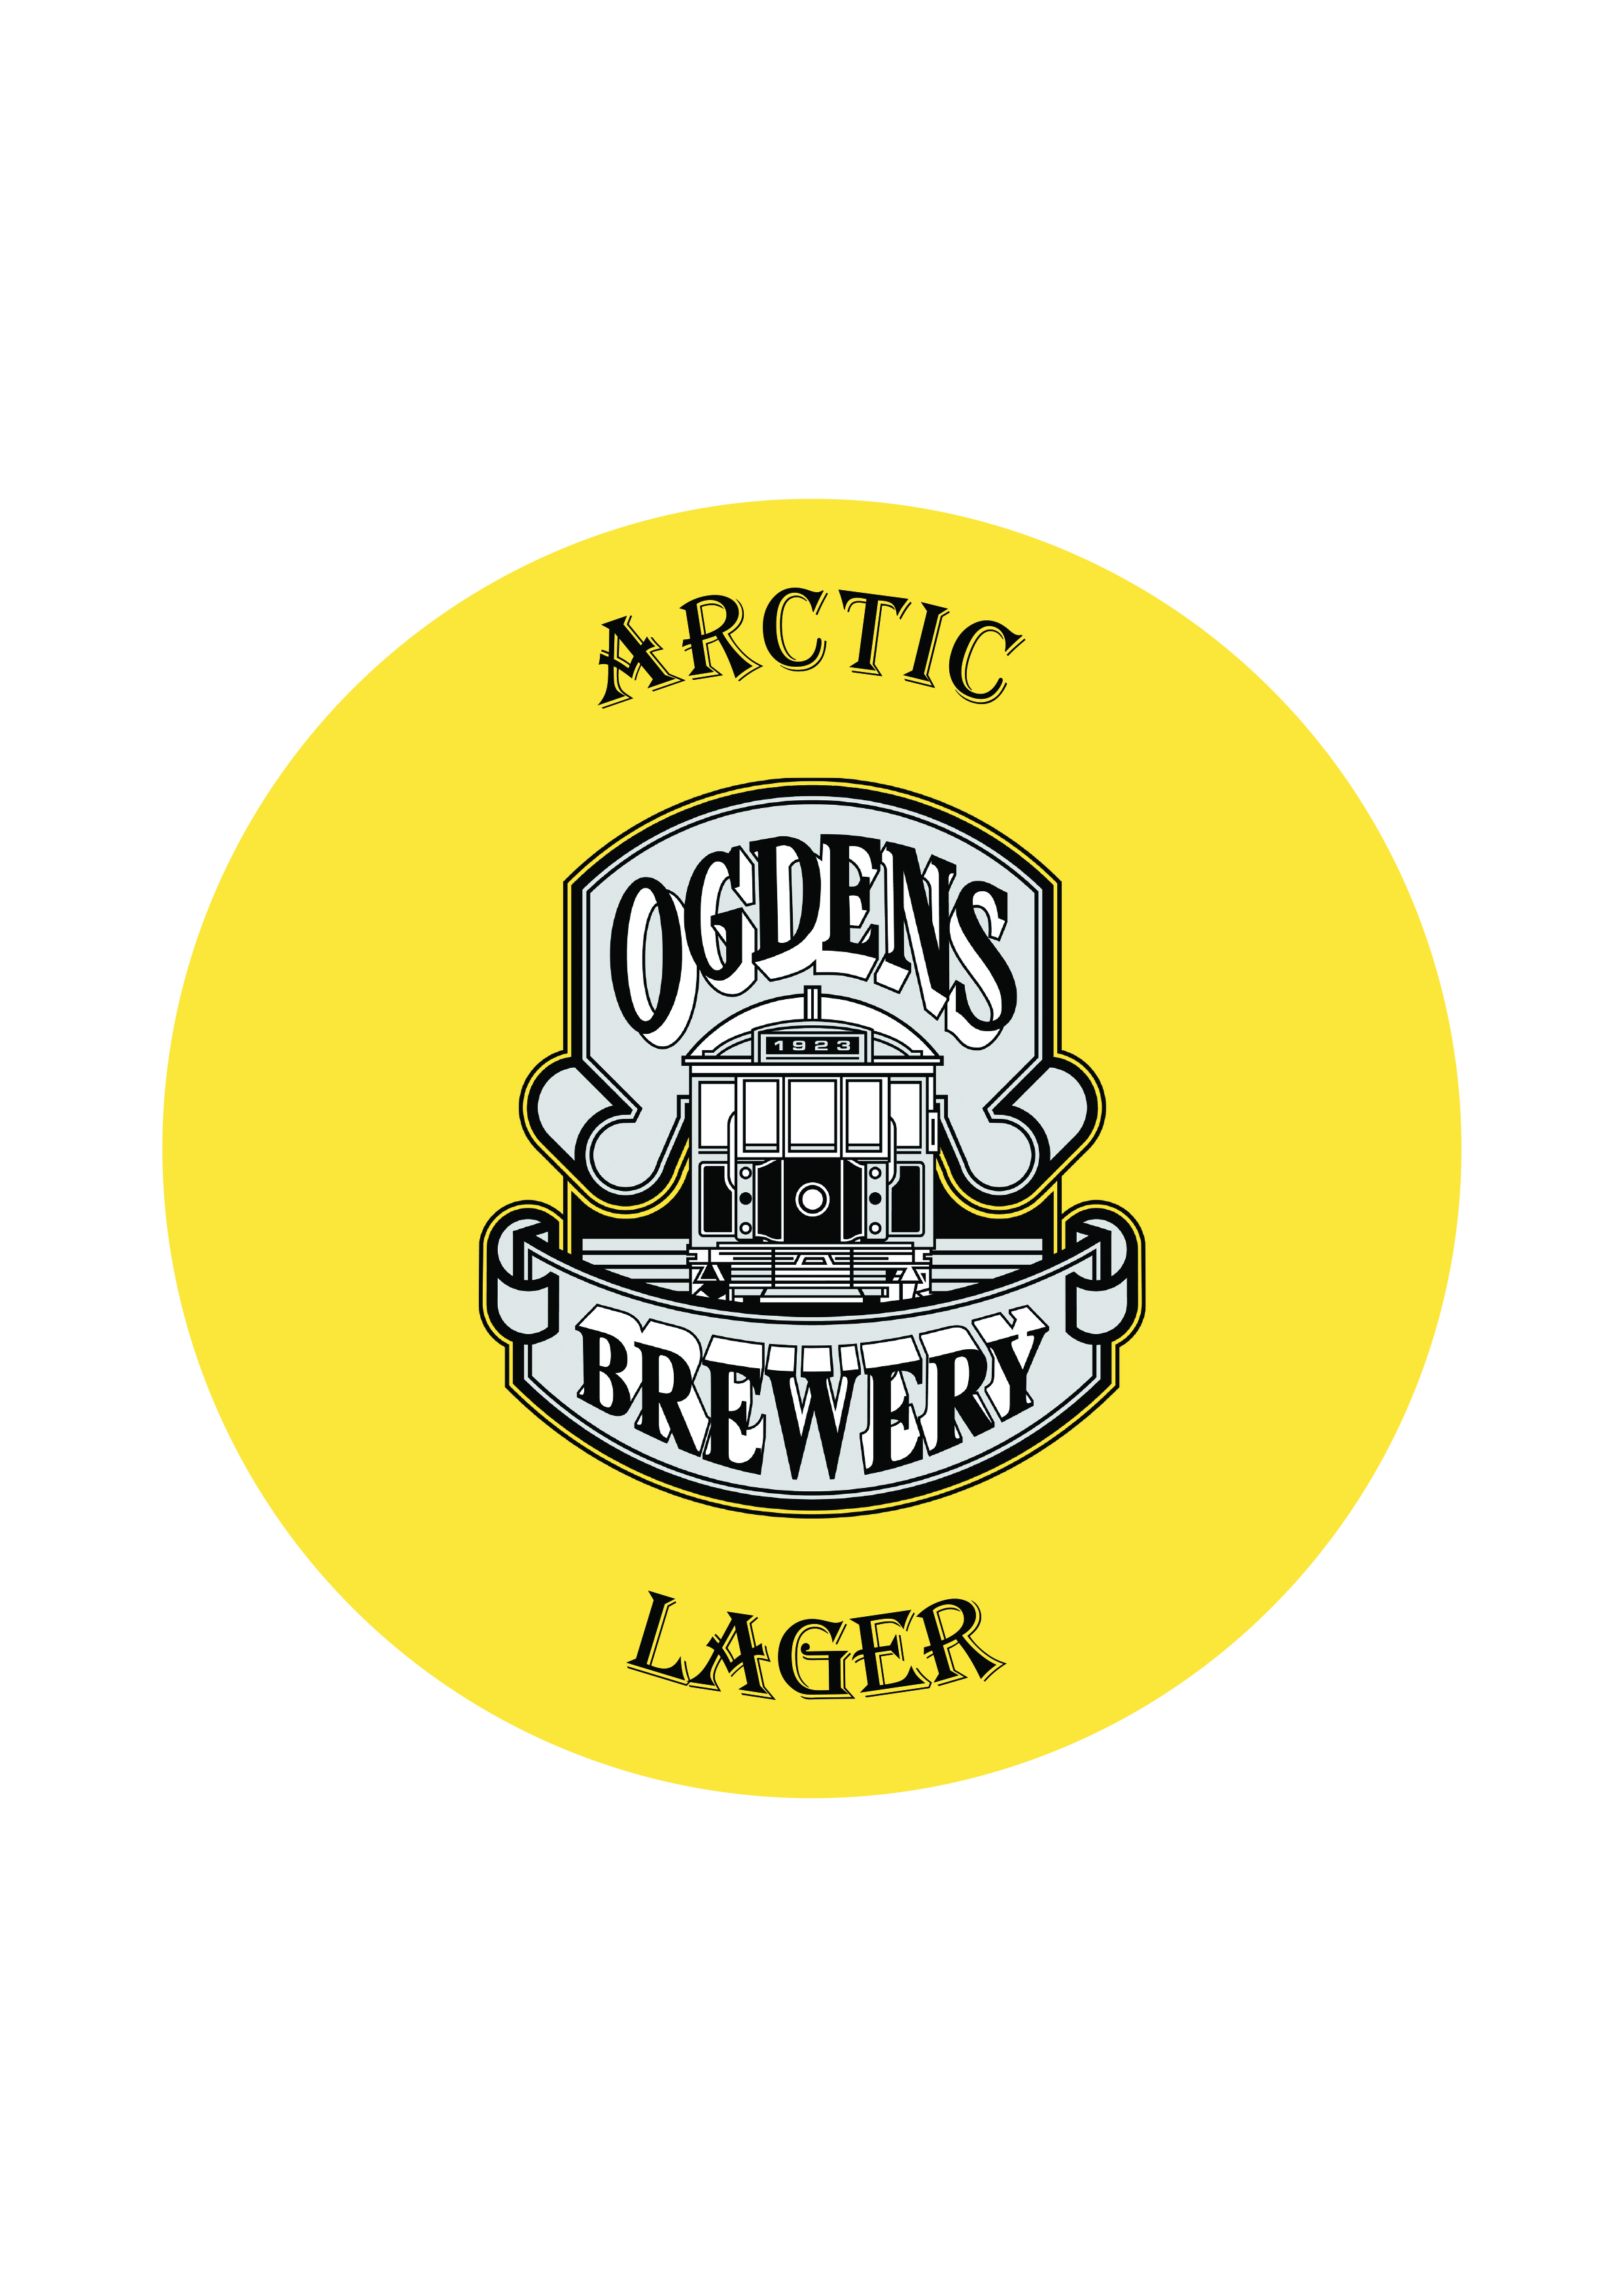 Arctic Lager   Lager   4.8% - Very refreshing and drinkable with its crisp and clean lager characteristics (no fruity esters or diacetyl). It has a firm bitterness and a medium, noble hop character, in this case Hallertau and Tettnanger. True German style of beer uses 'noble' hops. Straw to gold in colour.